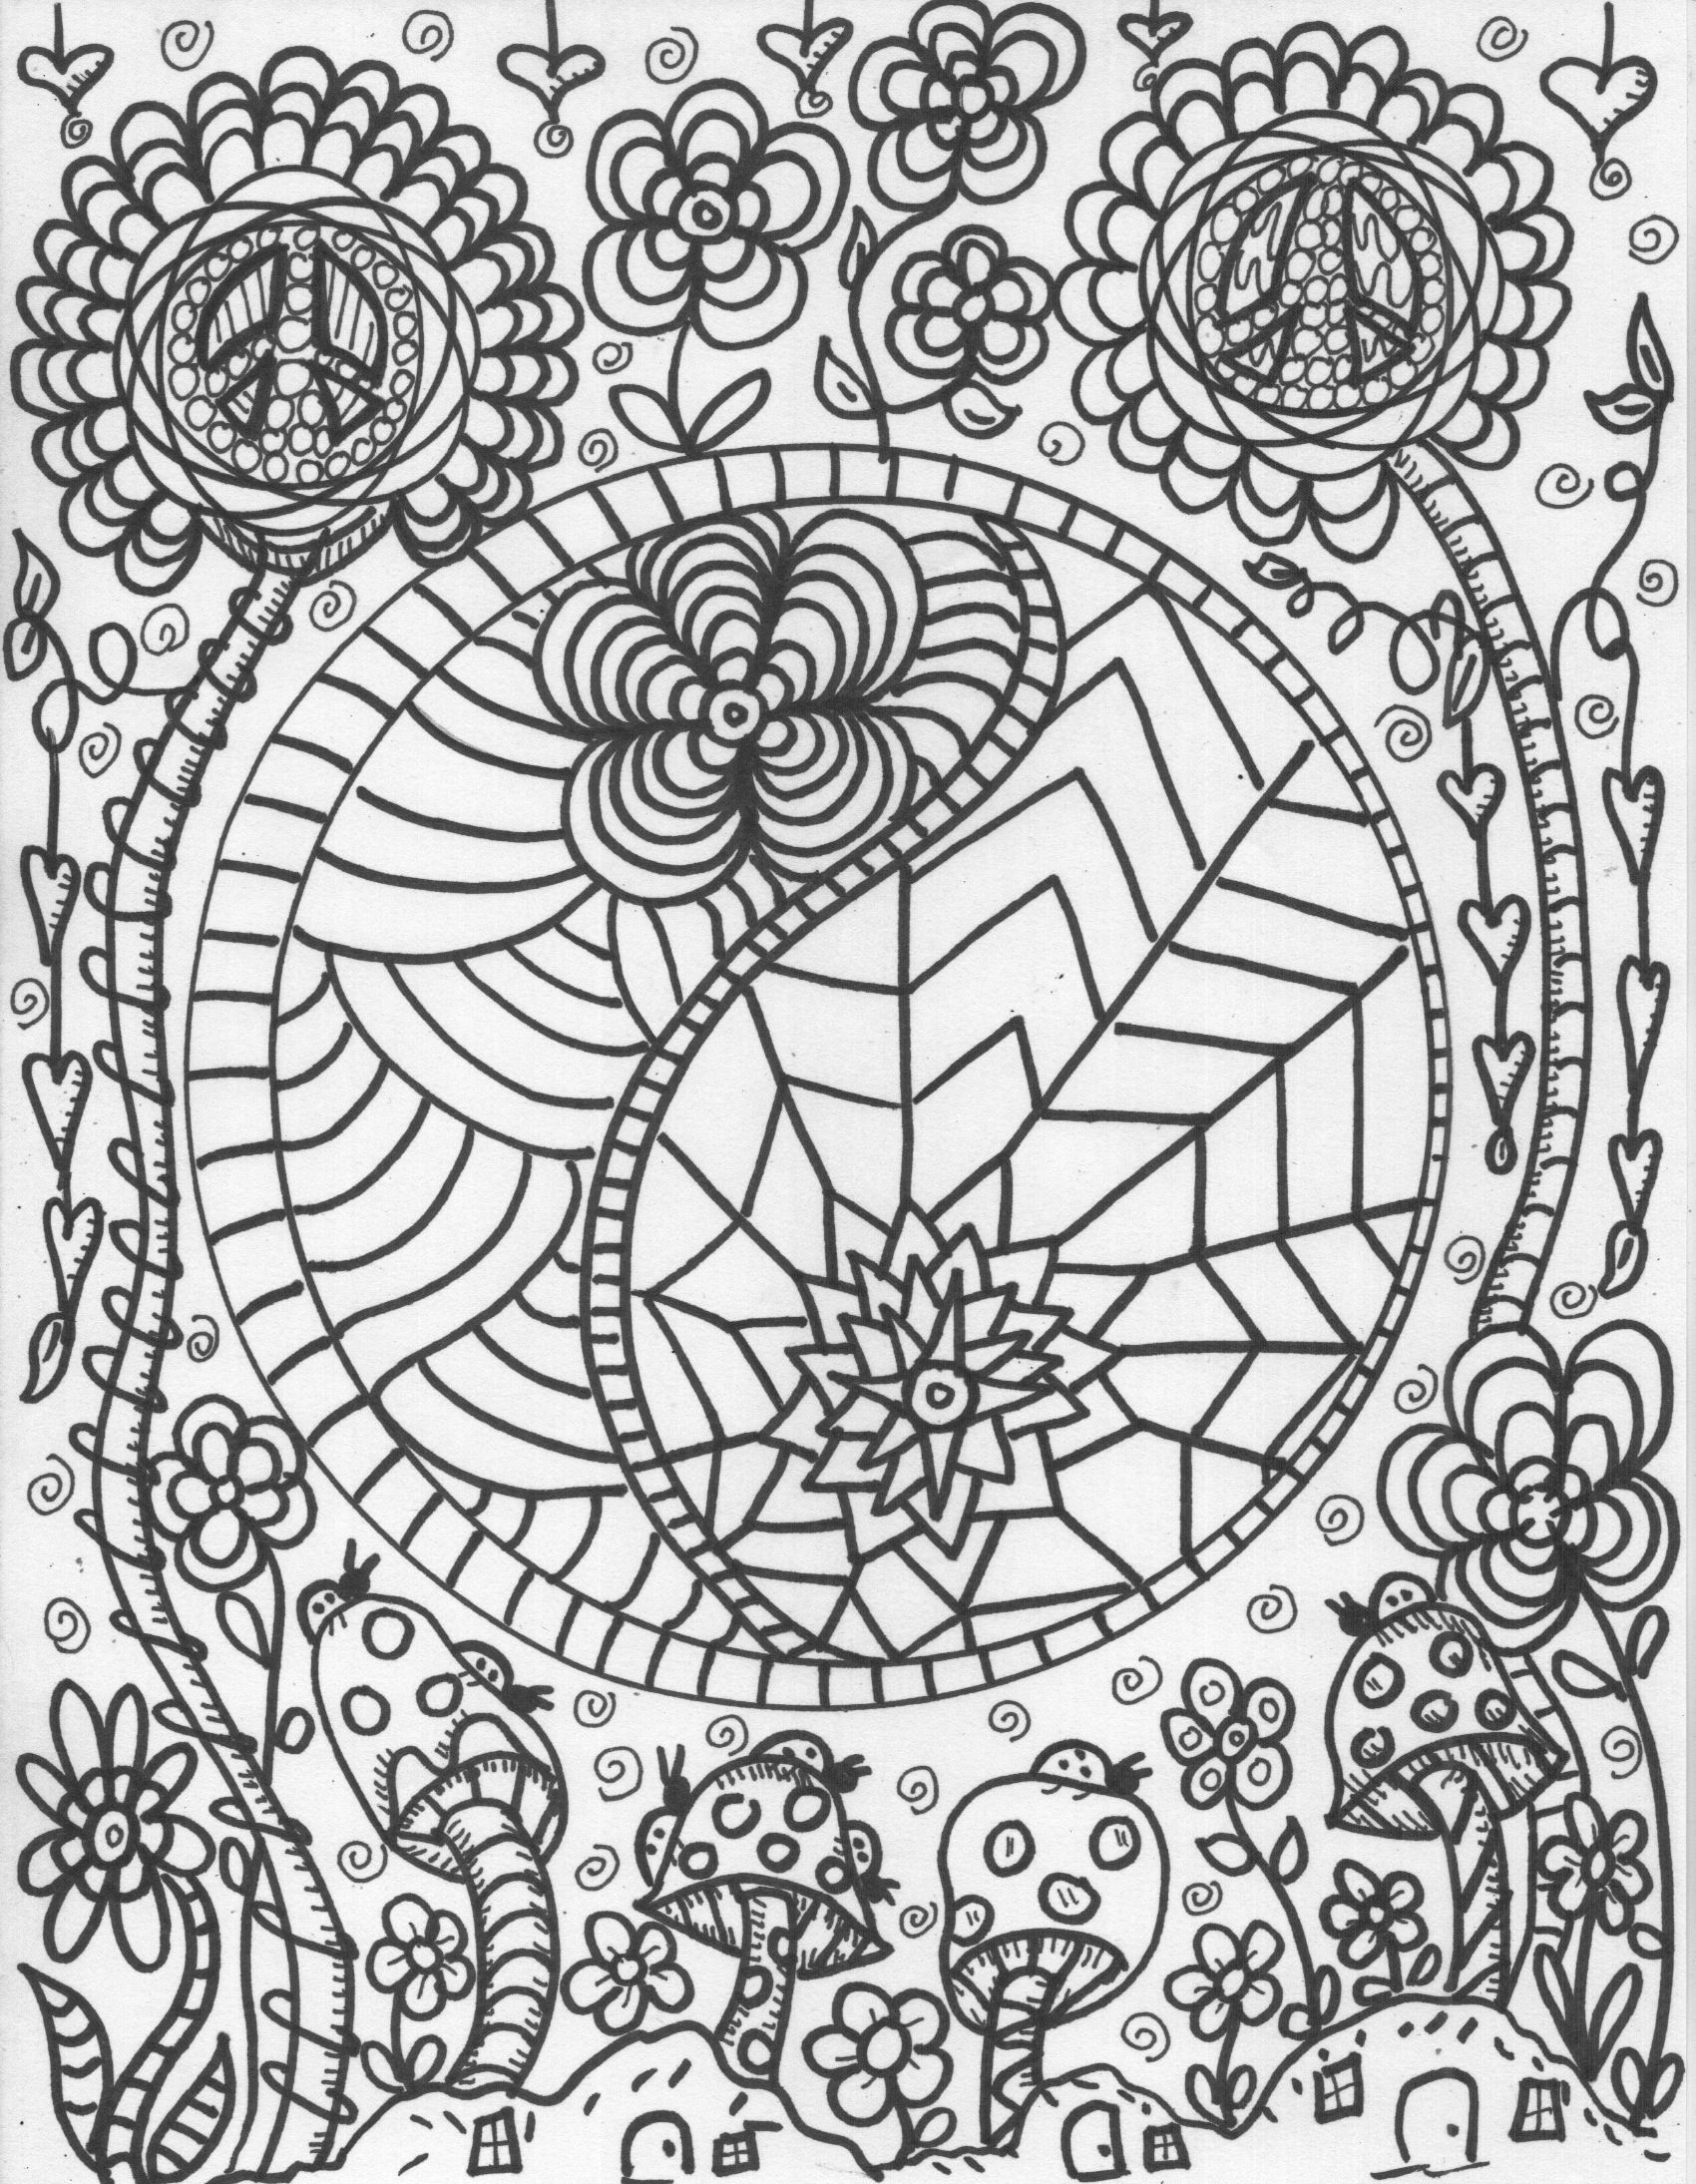 pattern coloring books abstract pattern coloring page free printable coloring pages books coloring pattern